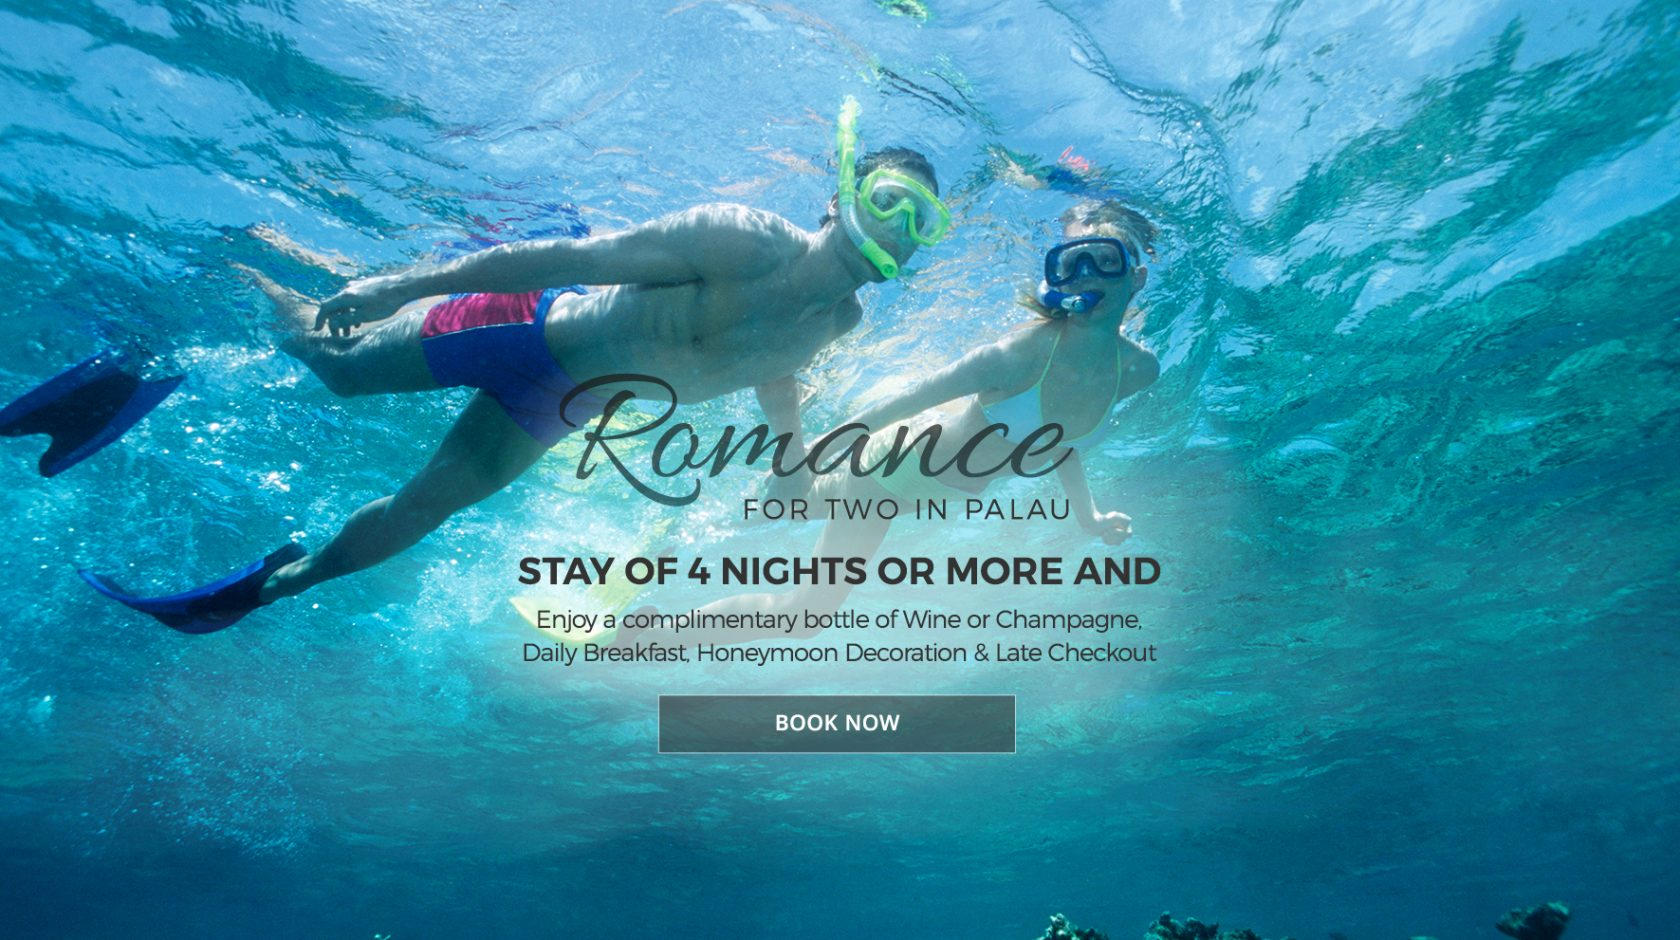 Romance for Two Special at the Cove Resort Palau